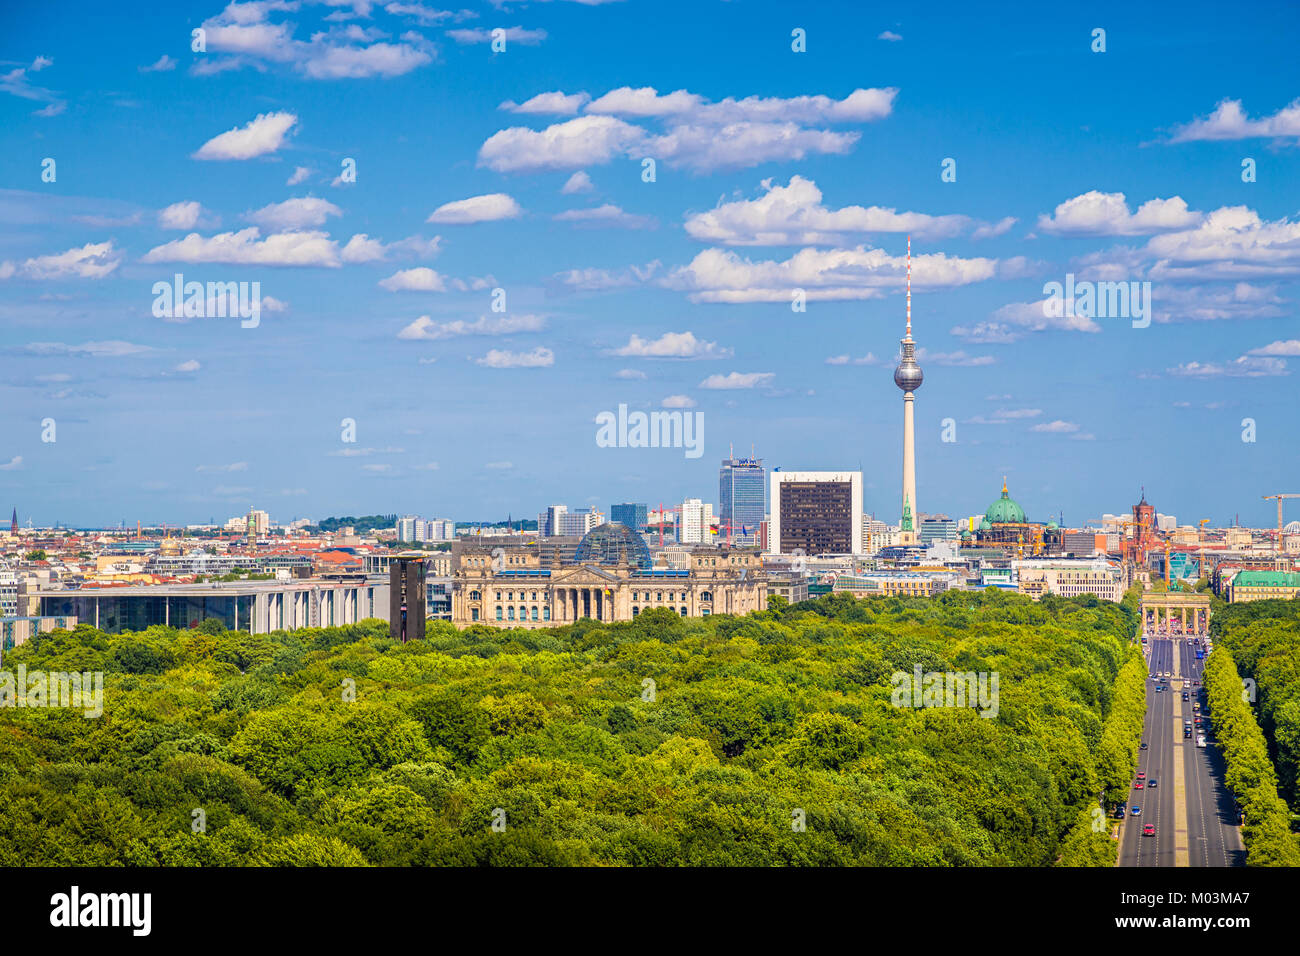 Aerial view of Berlin skyline panorama with Grosser Tiergarten public park on a sunny day with blue sky and clouds - Stock Image